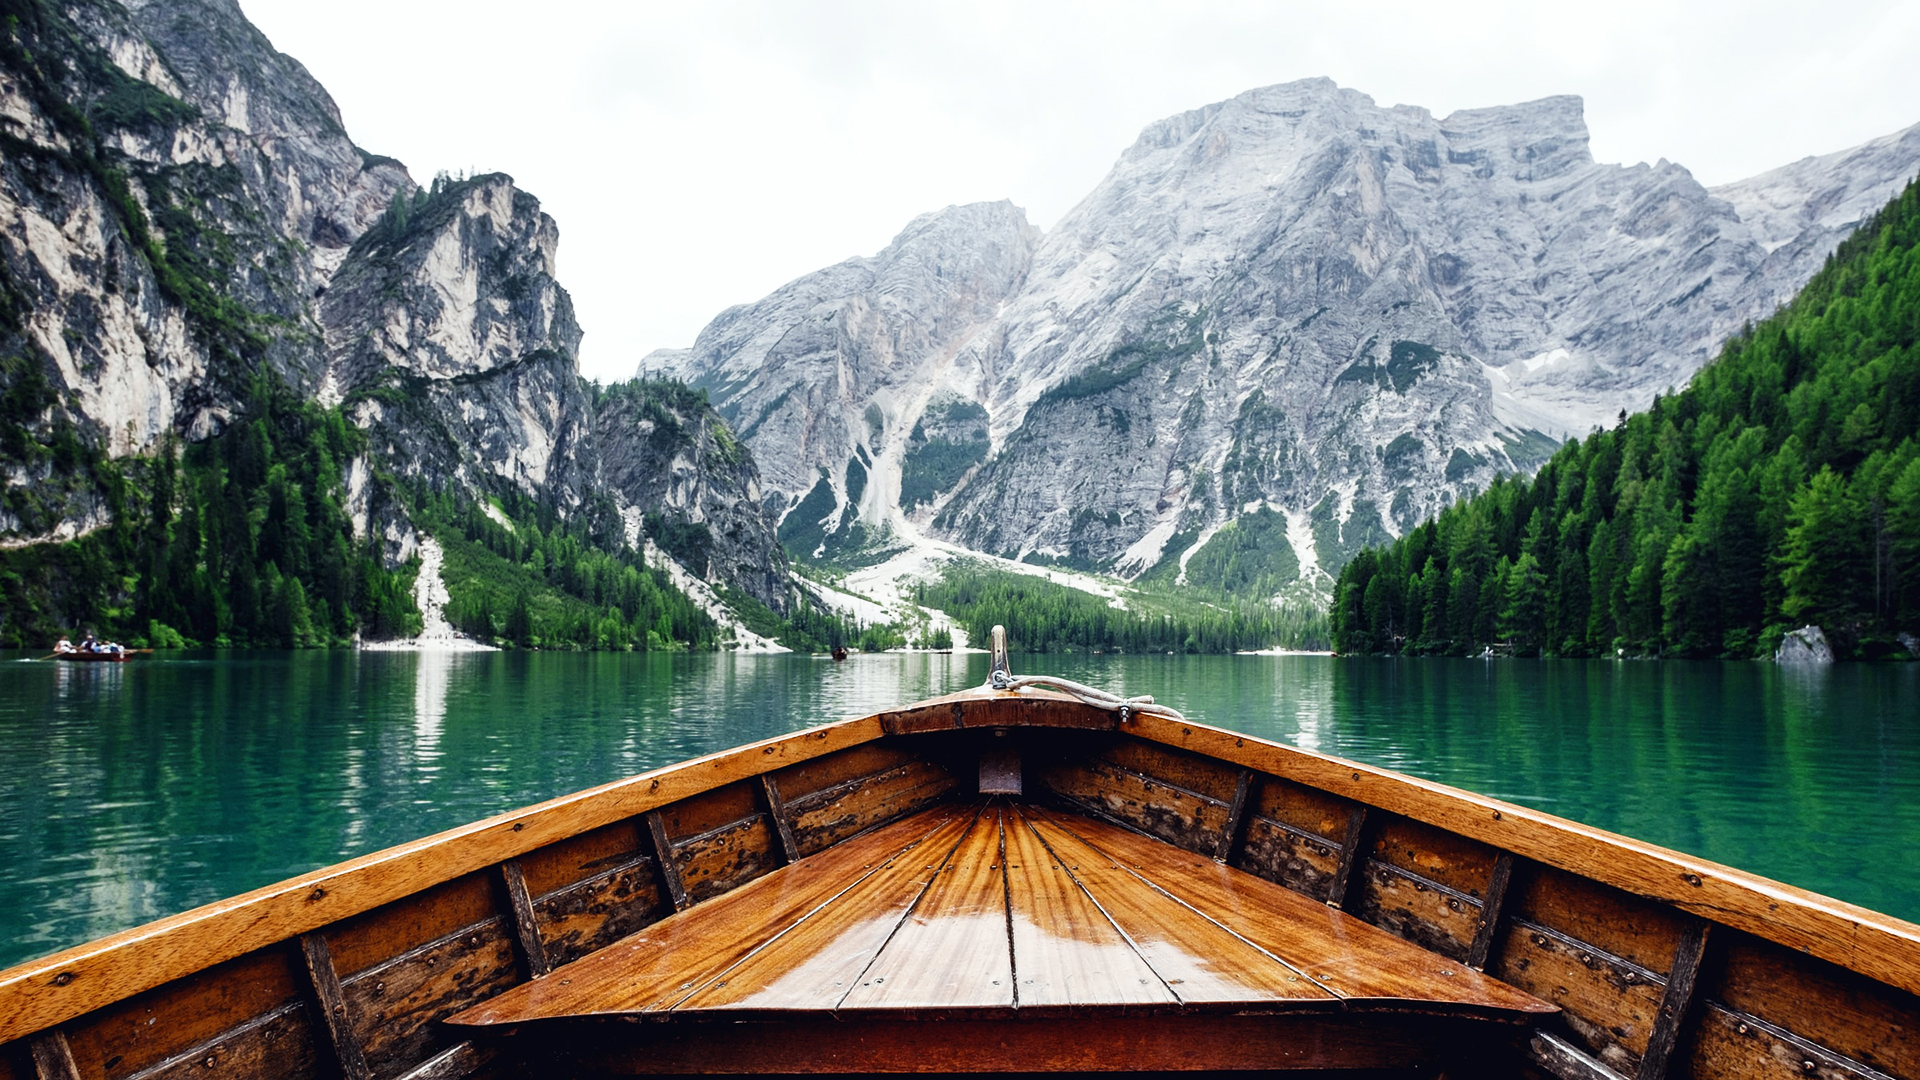 Boat on Lago di Braies. Virtual background to use on Zoom, Microsoft Teams, Skype, Google Meet, WebEx or any other compatible app.